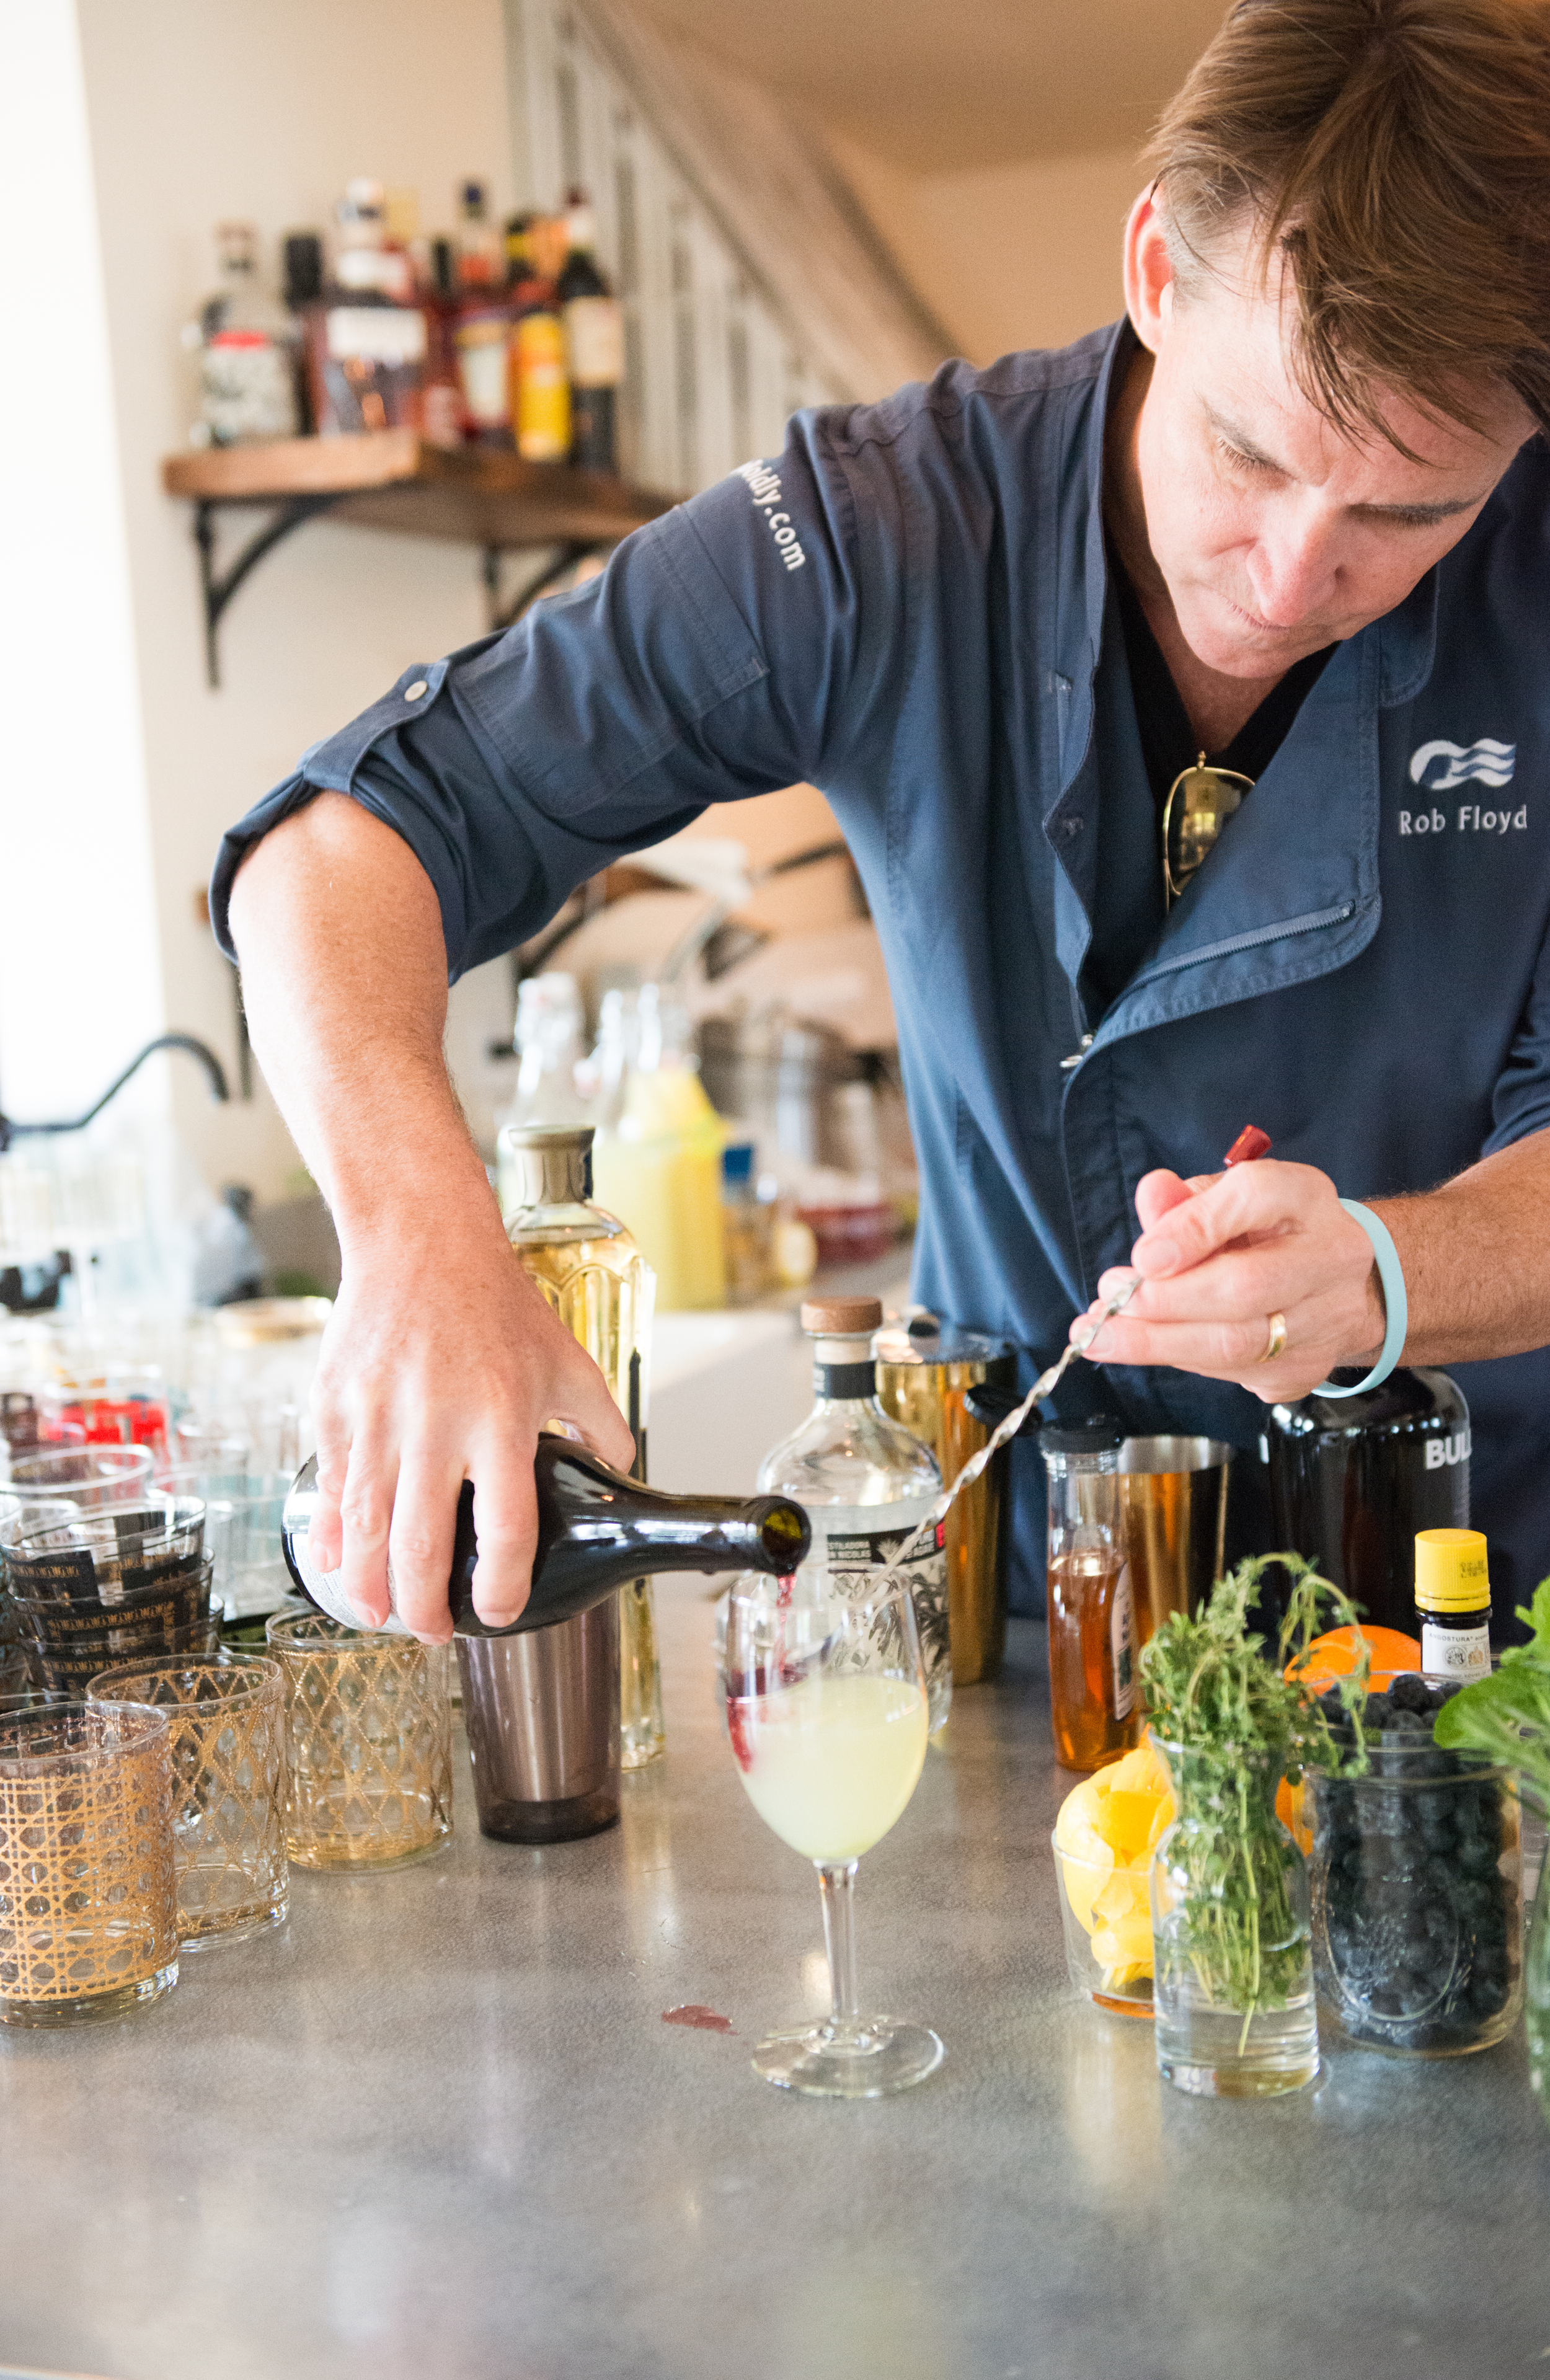 web_rob_mixing_pinot_float.png